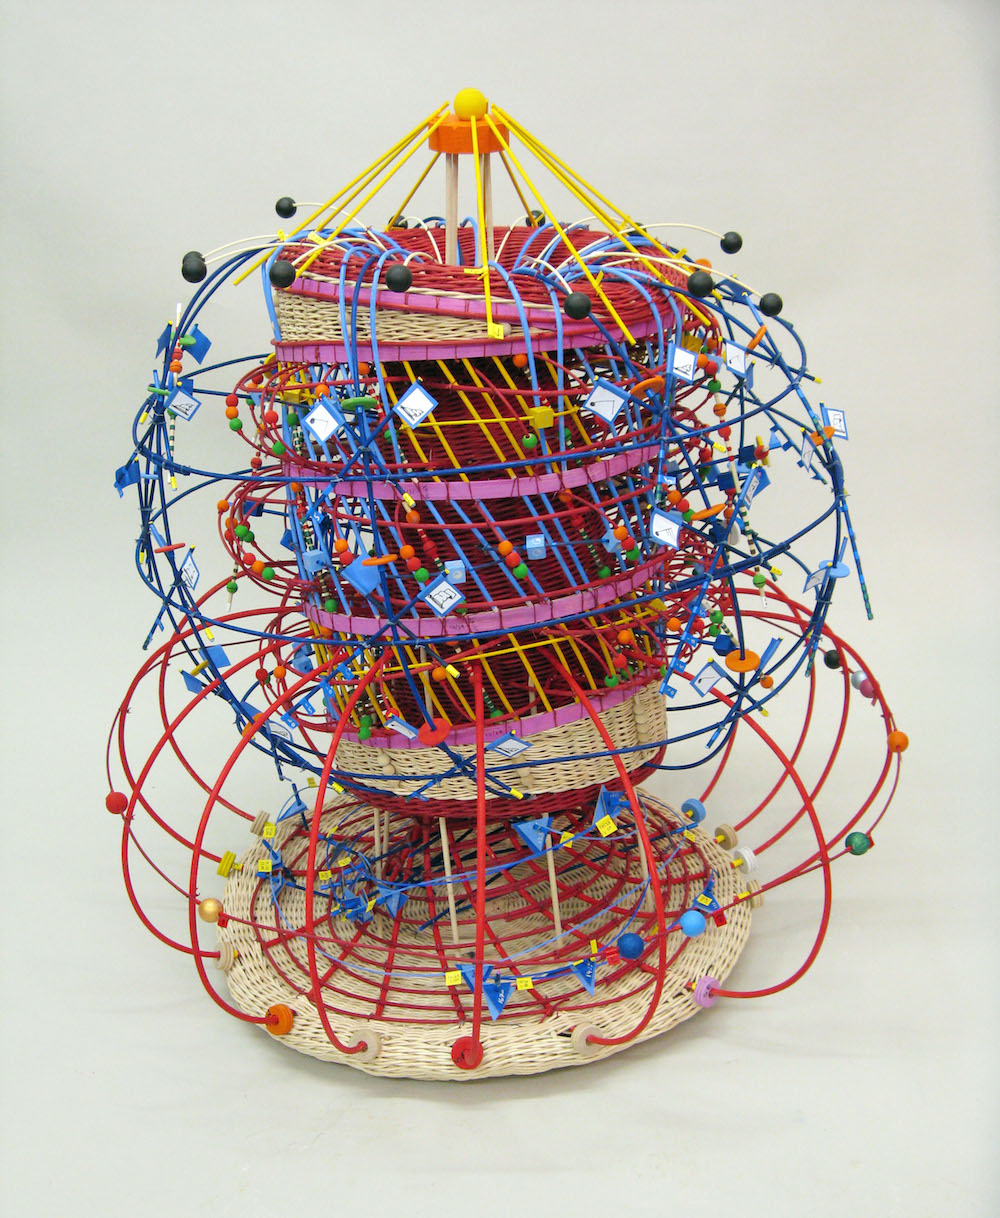 Colorful Basket Weaving Sculptures by Nathalie Miebach Transform Weather Data into Visual Art